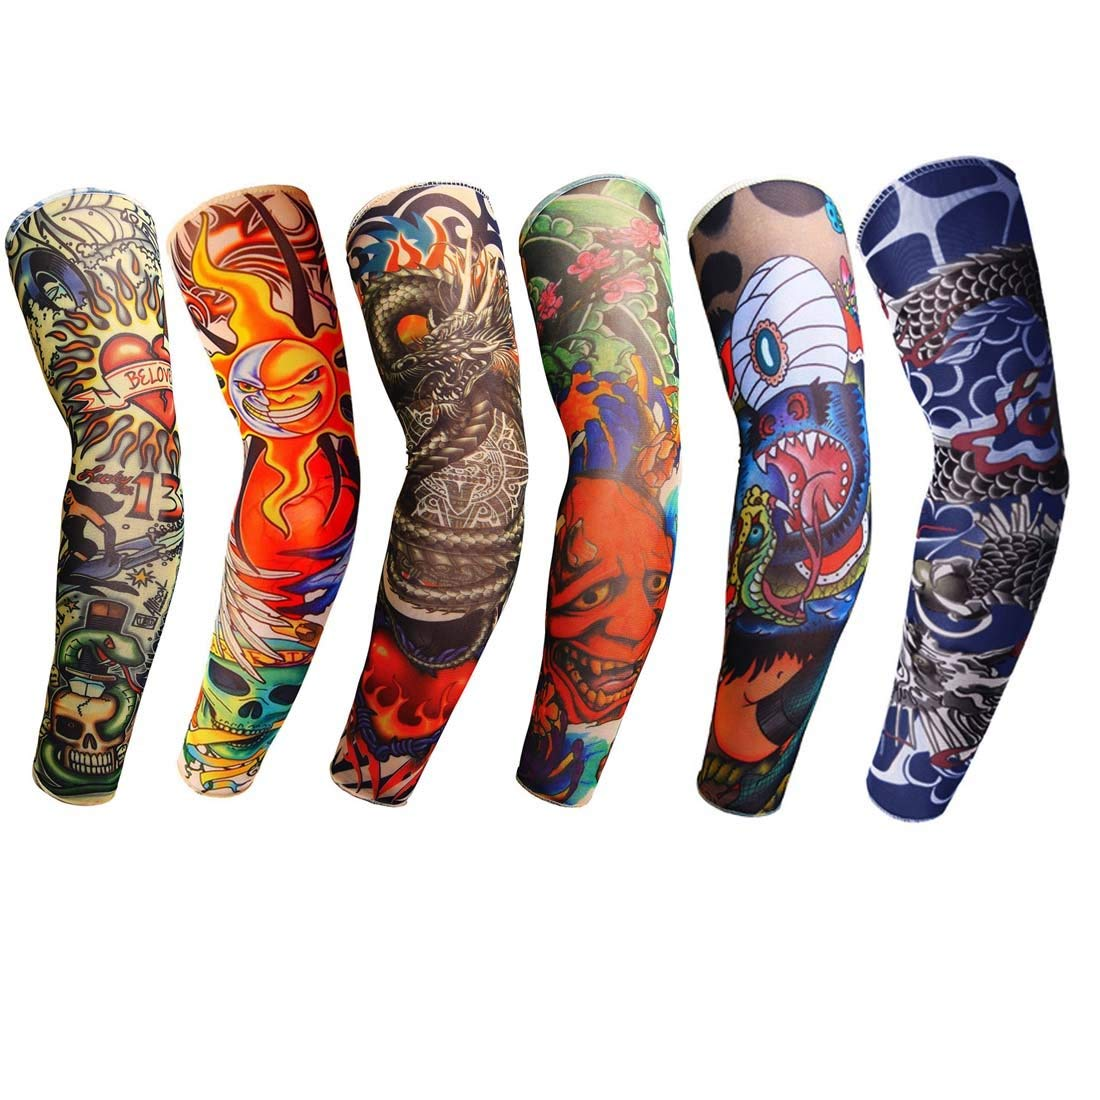 989681925d2 Get Quotations · KWLET 6pcs Temporary Fake Tattoo Arm Sleeves Cover Body  Art Stockings Summer UV Protection Arm Sunscreen